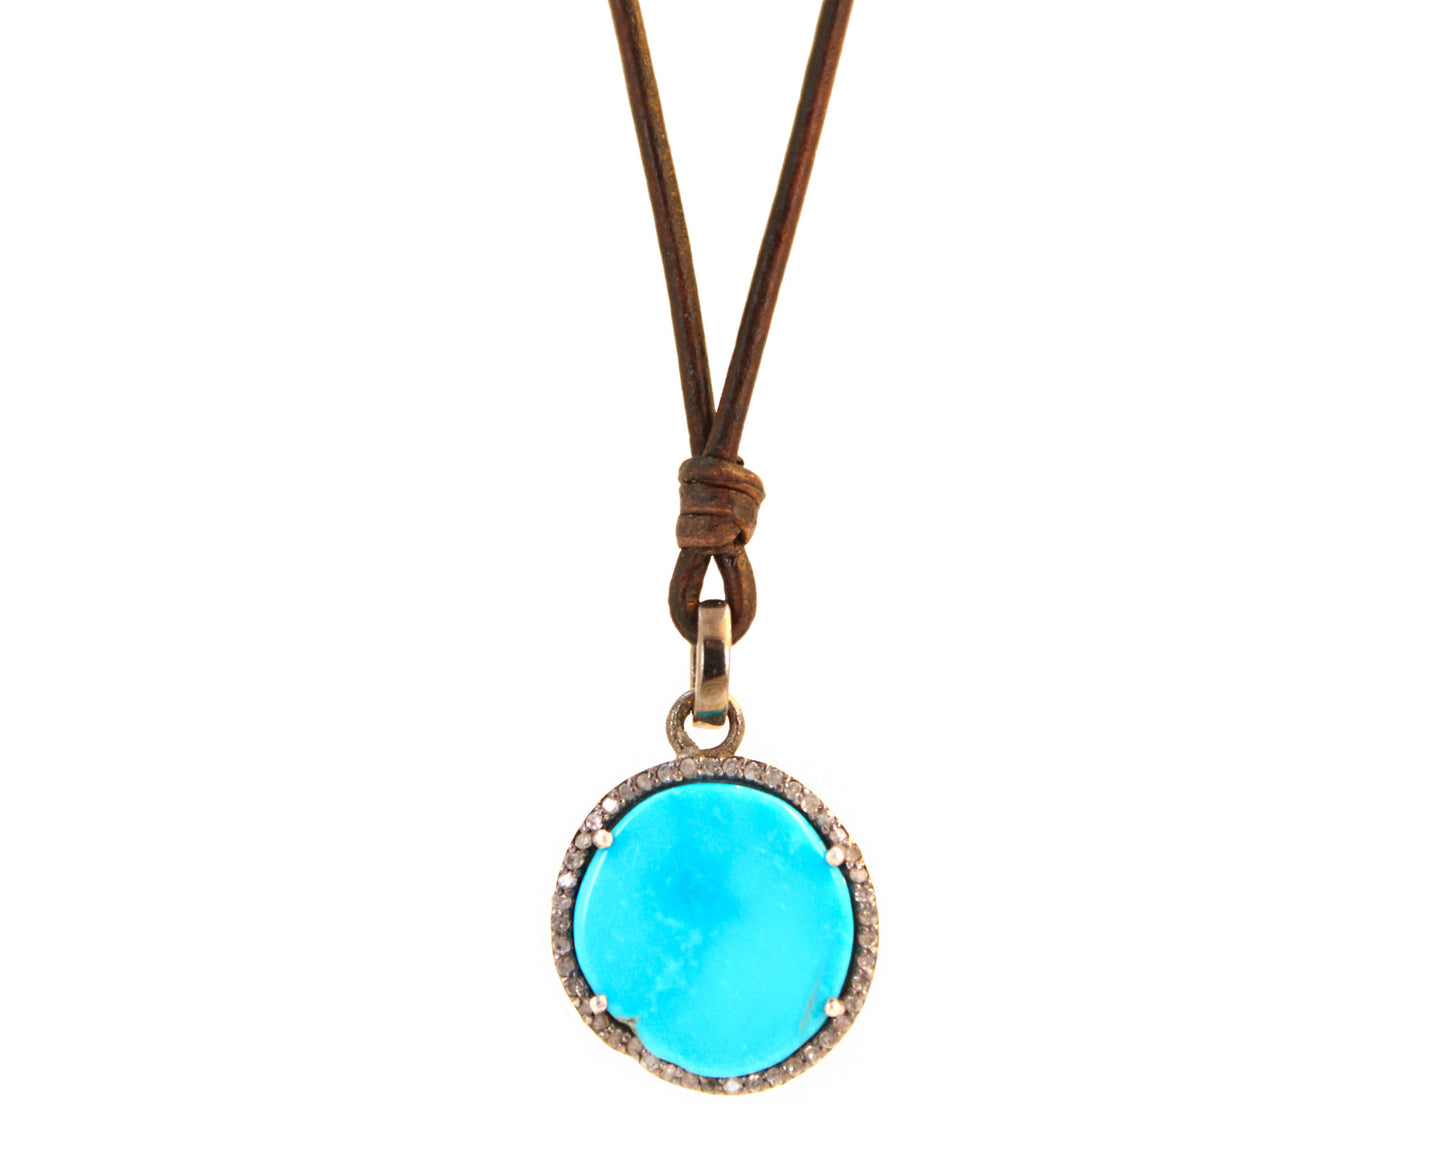 bolo de bling natural pendant casa necklace products image suede long turquoise copy compact